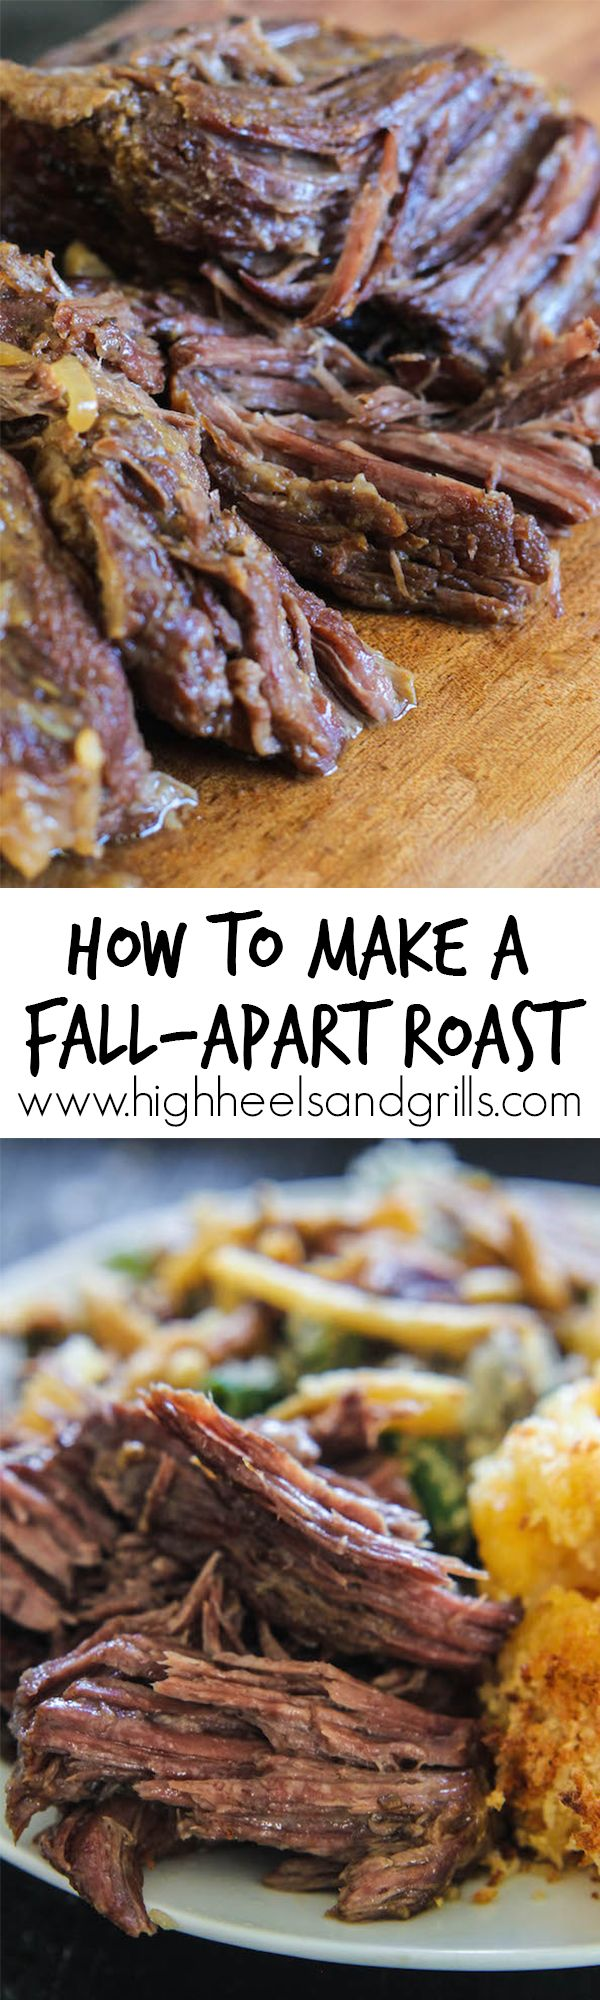 How to Make a Fall-Apart Roast ~ One that will melt in your mouth and takes little effort on your part.